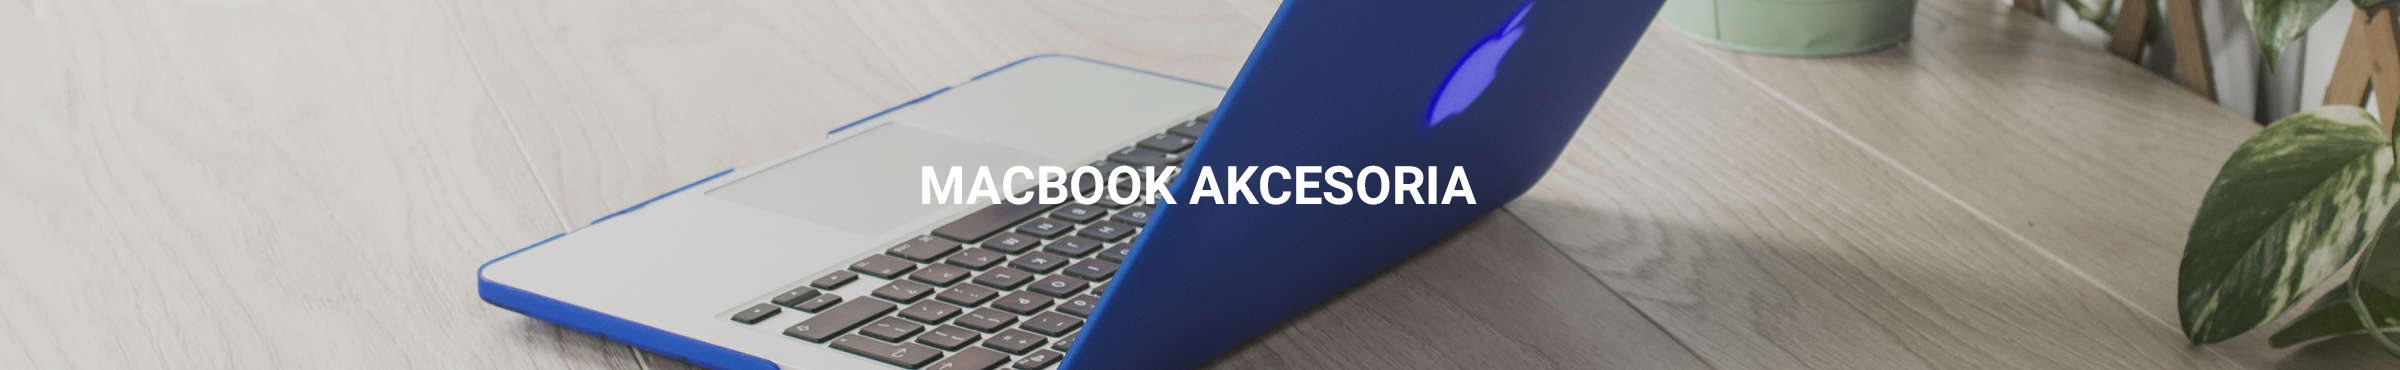 MacBook Akcesoria